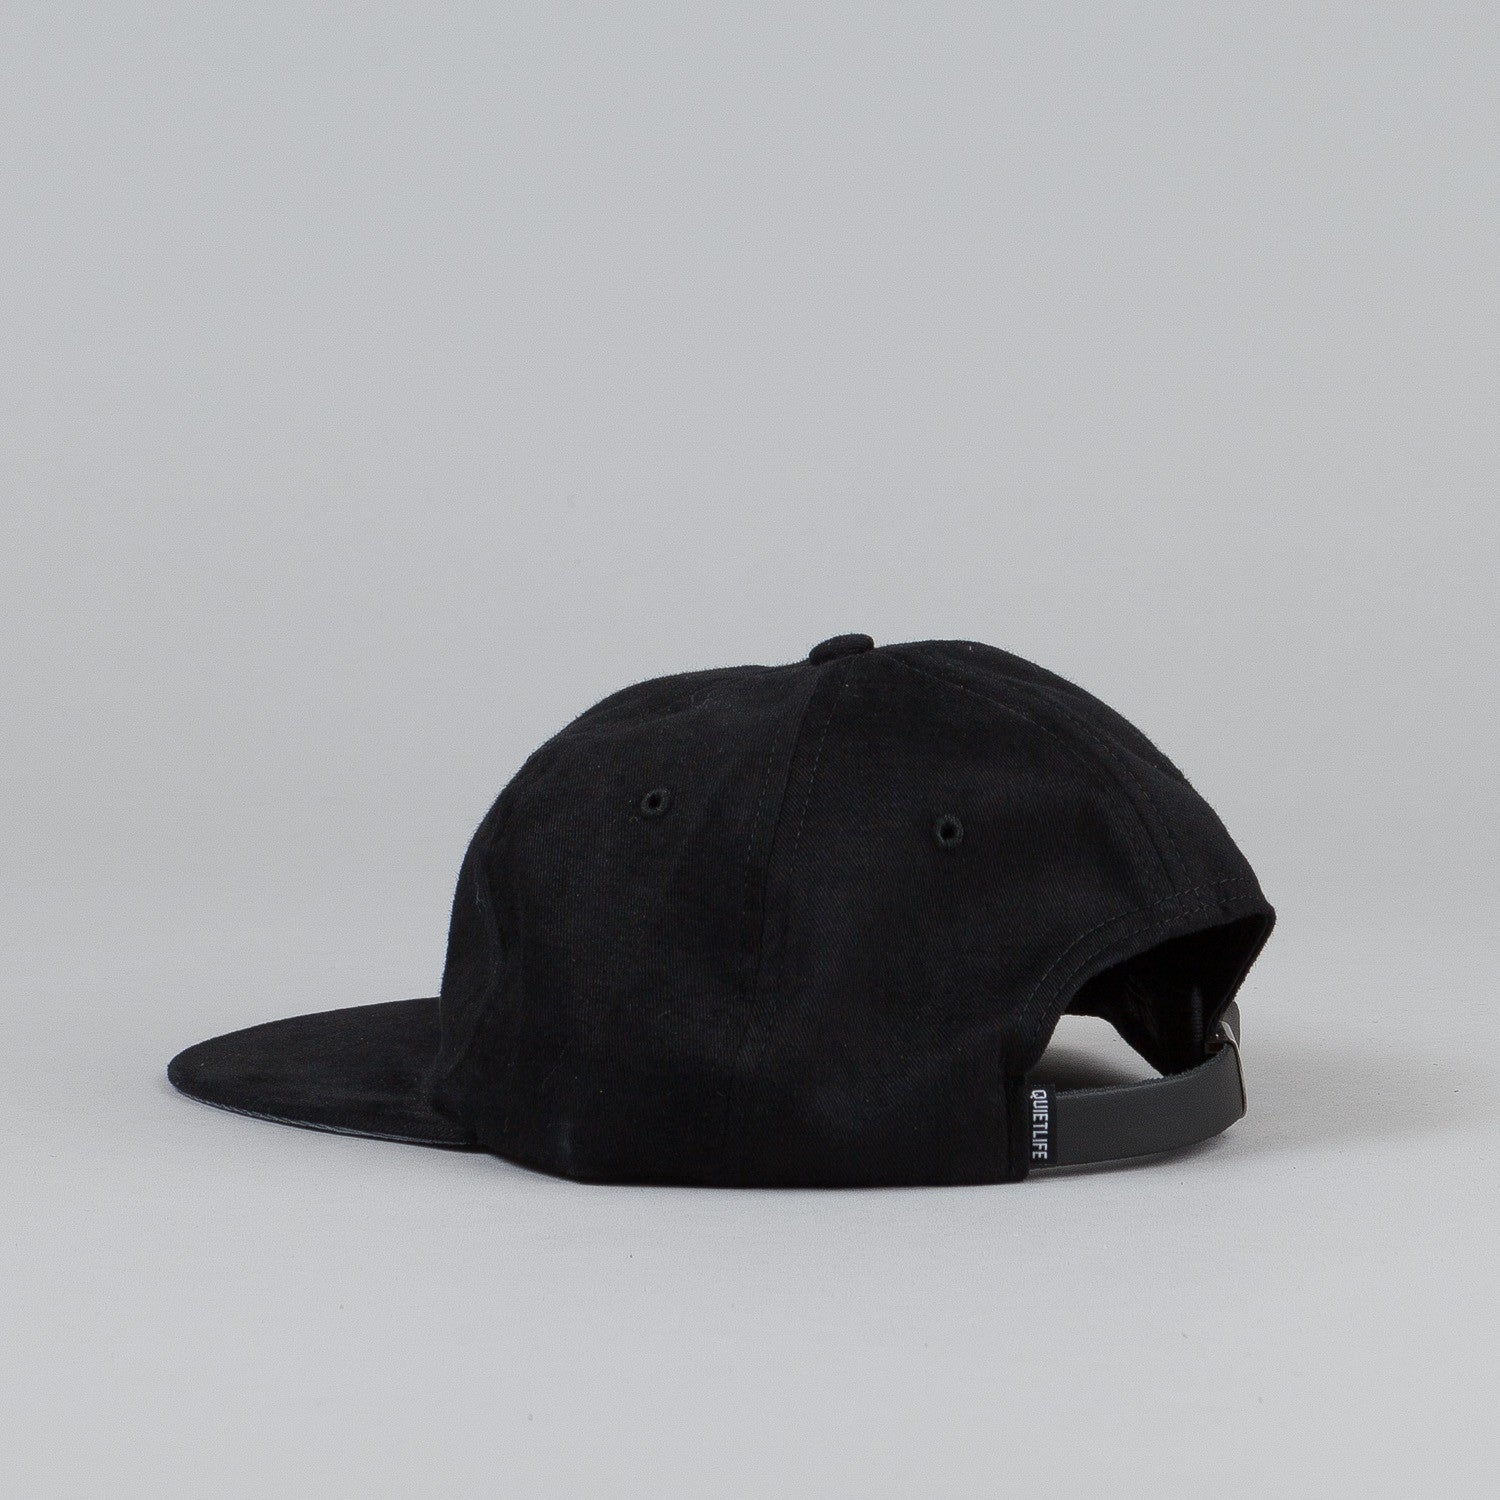 The Quiet Life Katsuo Polo Cap Black